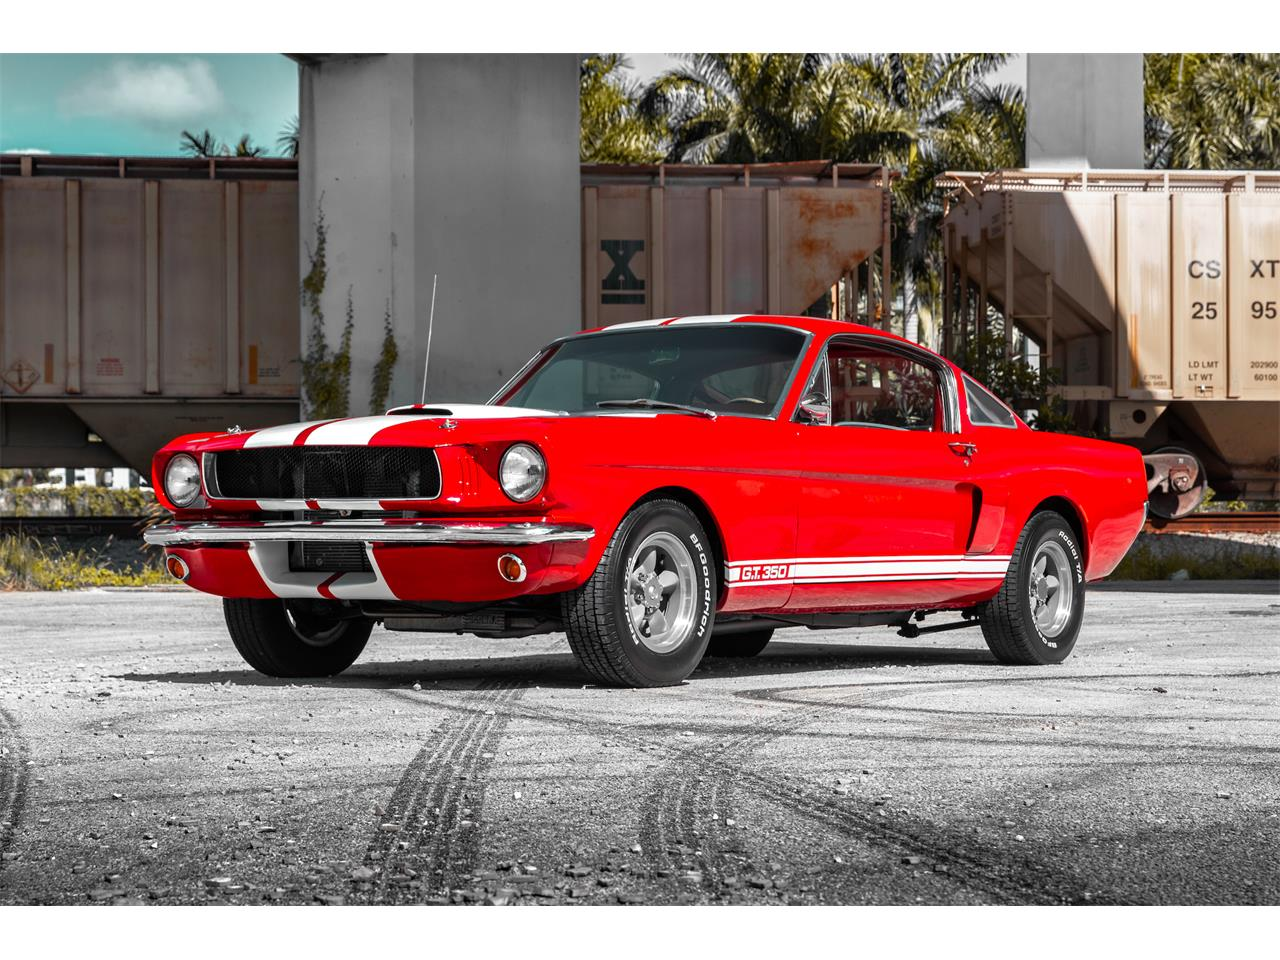 For Sale: 1965 Ford Mustang in Fort Lauderdale, Florida